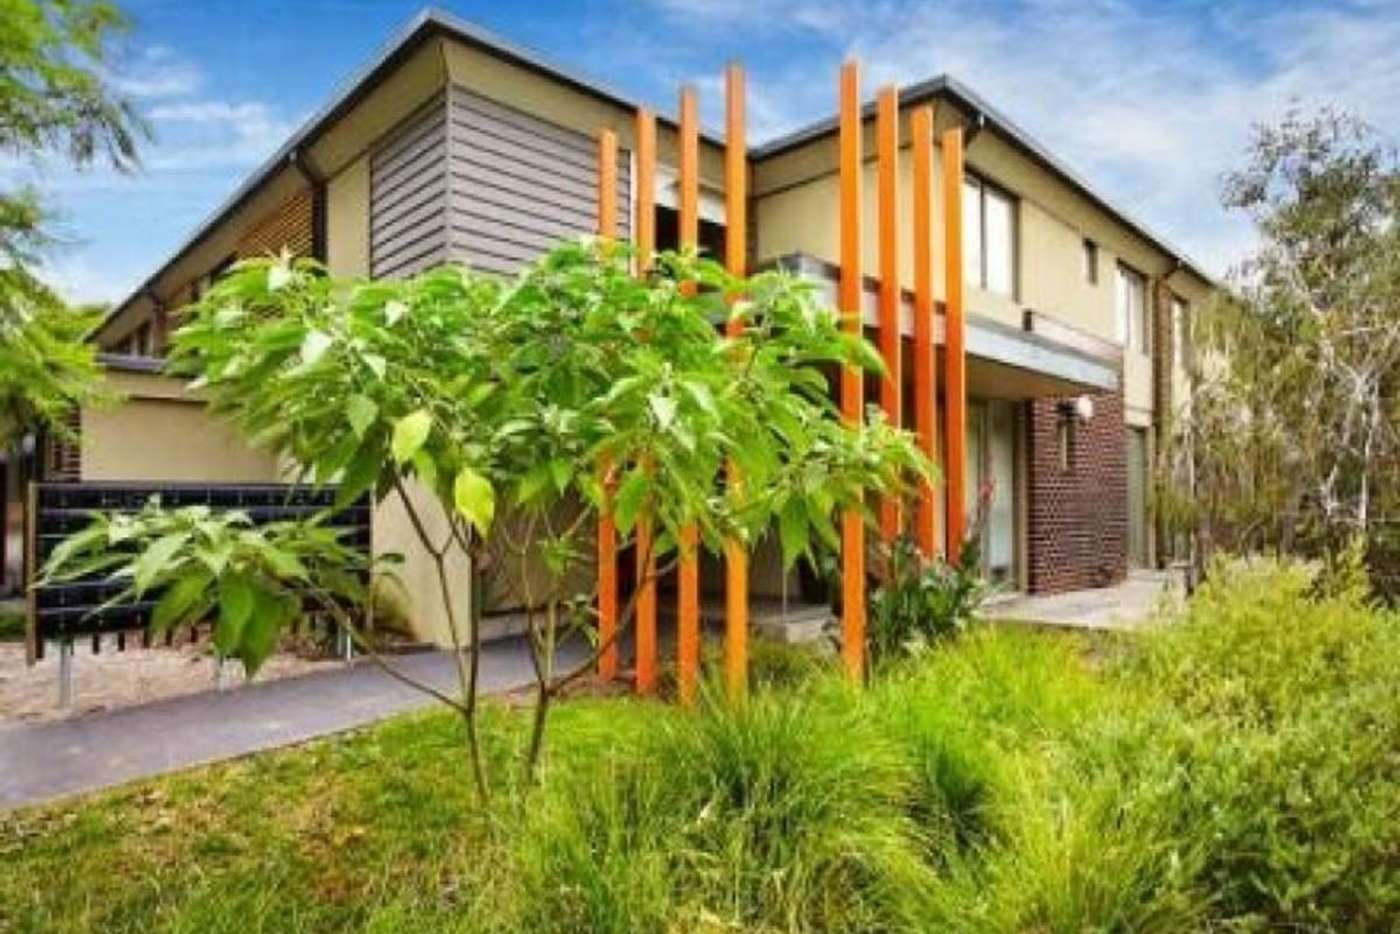 Main view of Homely studio listing, 48/15 Hawthorn Road, Caulfield VIC 3162